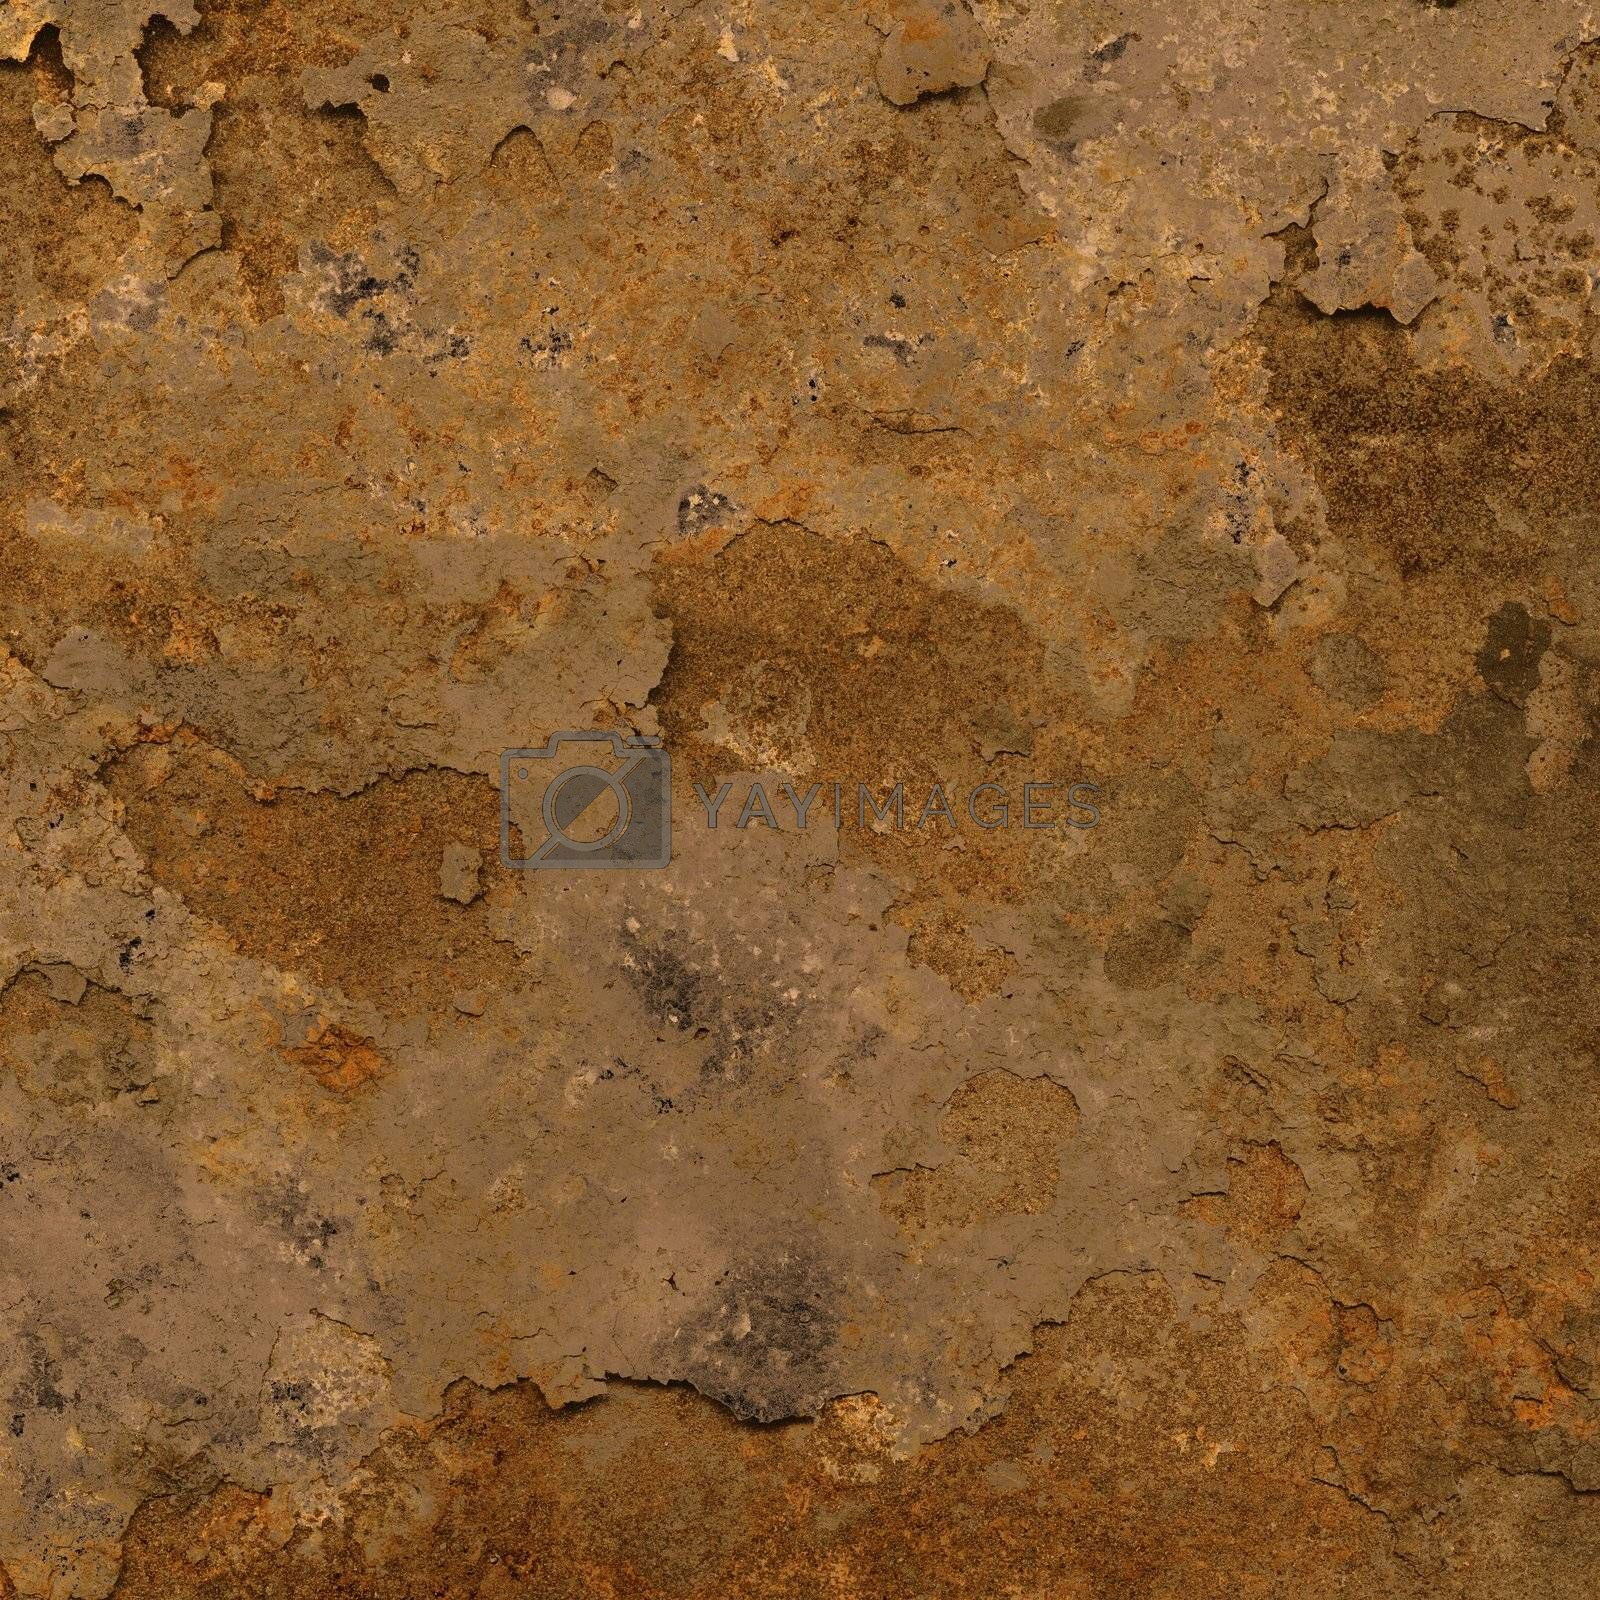 Brown Marble Texture High Resolution Royalty Free Stock Image Stock Photos Royalty Free Images Vectors Footage Yayimages